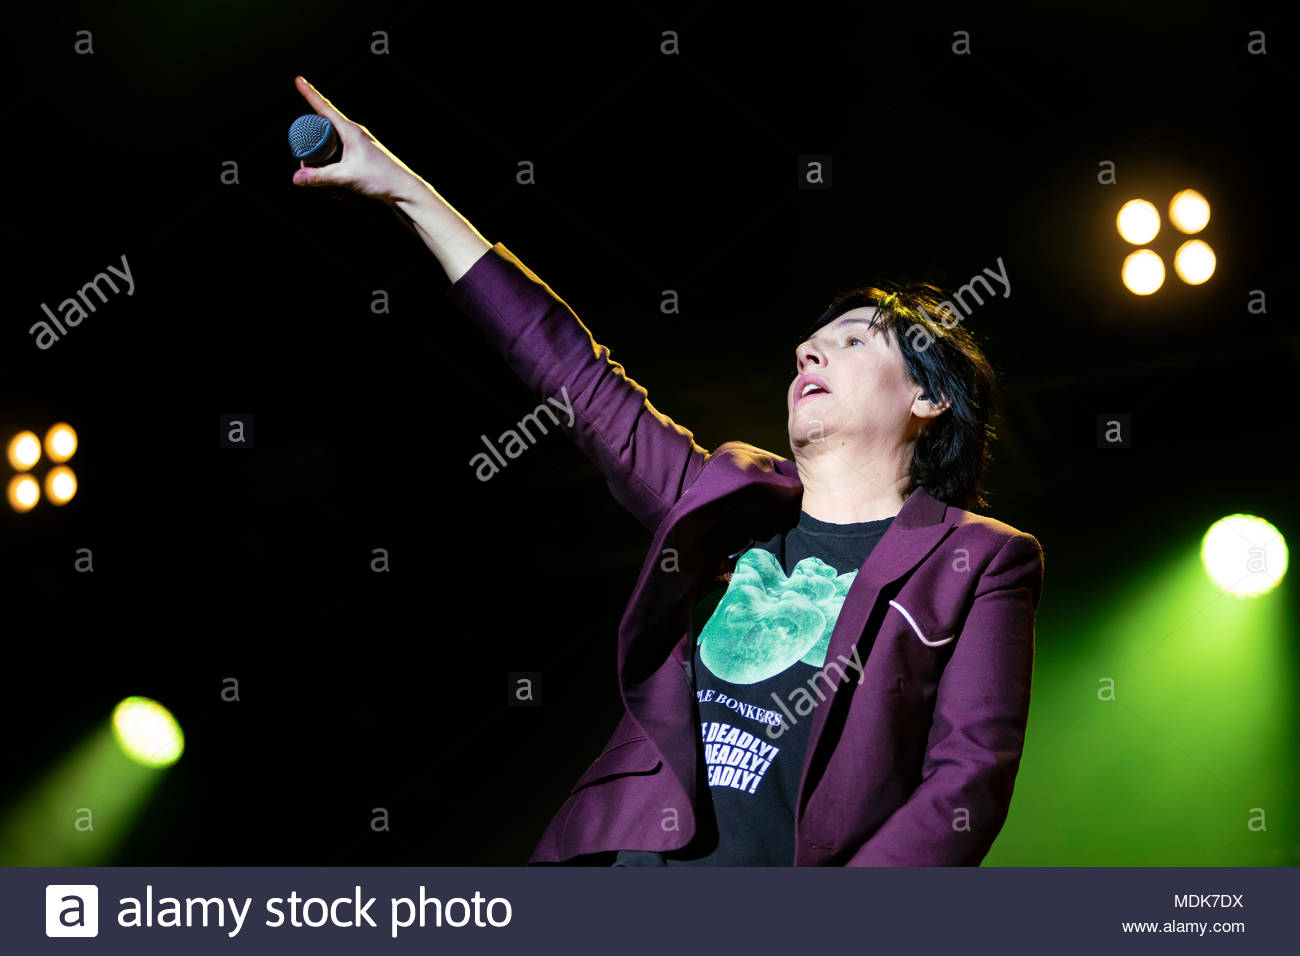 Texas (singer Sharleen Spiteri) performing live at the first edition of MUSILAC Mont-Blanc music festival in Chamonix (France) - Thursday 19 april 2018 - Stock Image